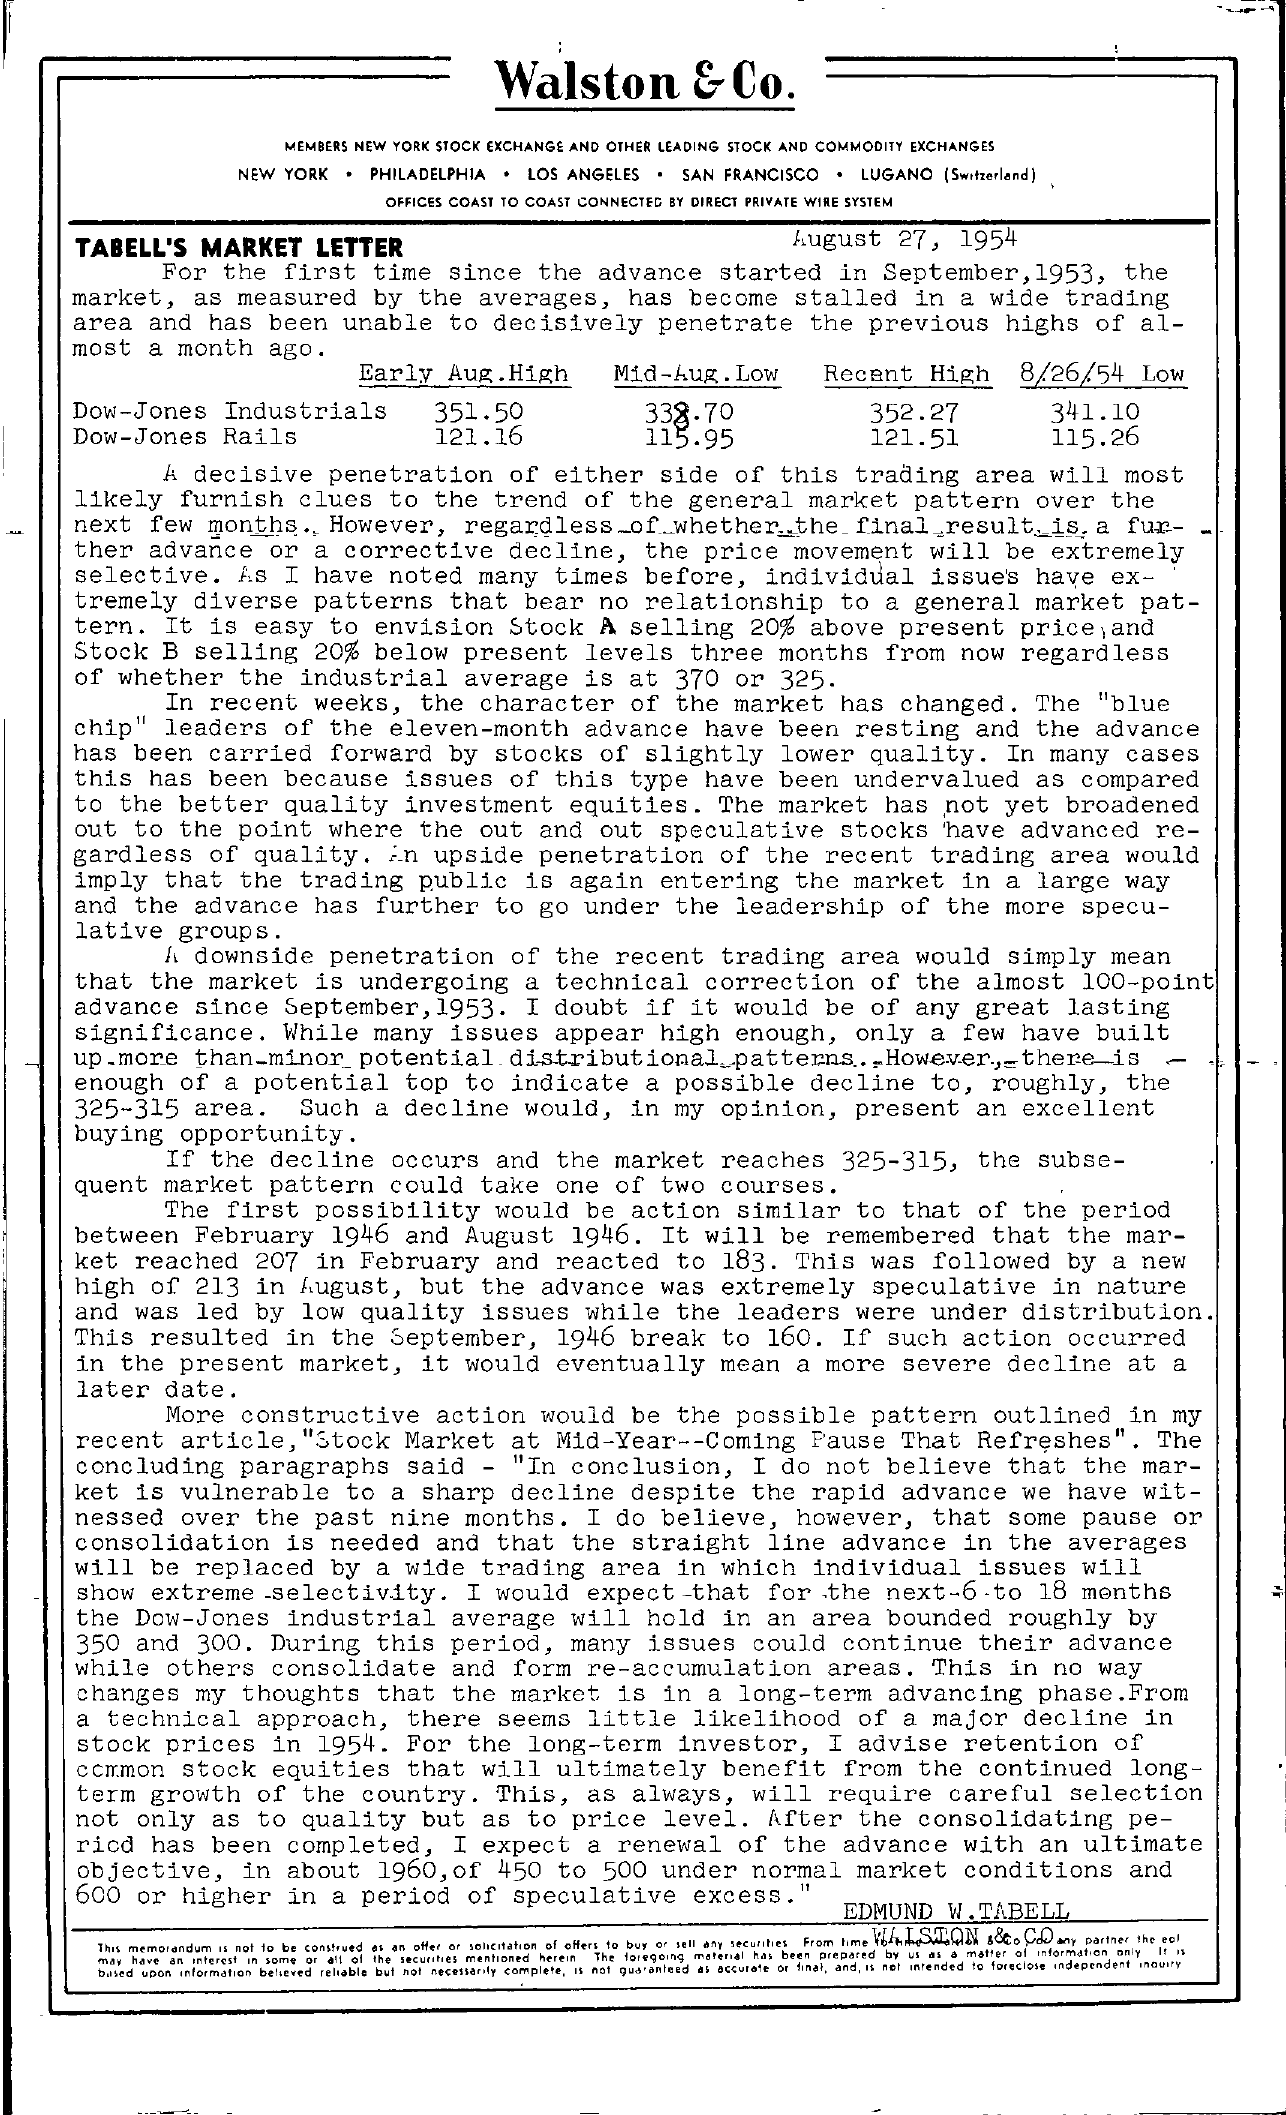 Tabell's Market Letter - August 27, 1954